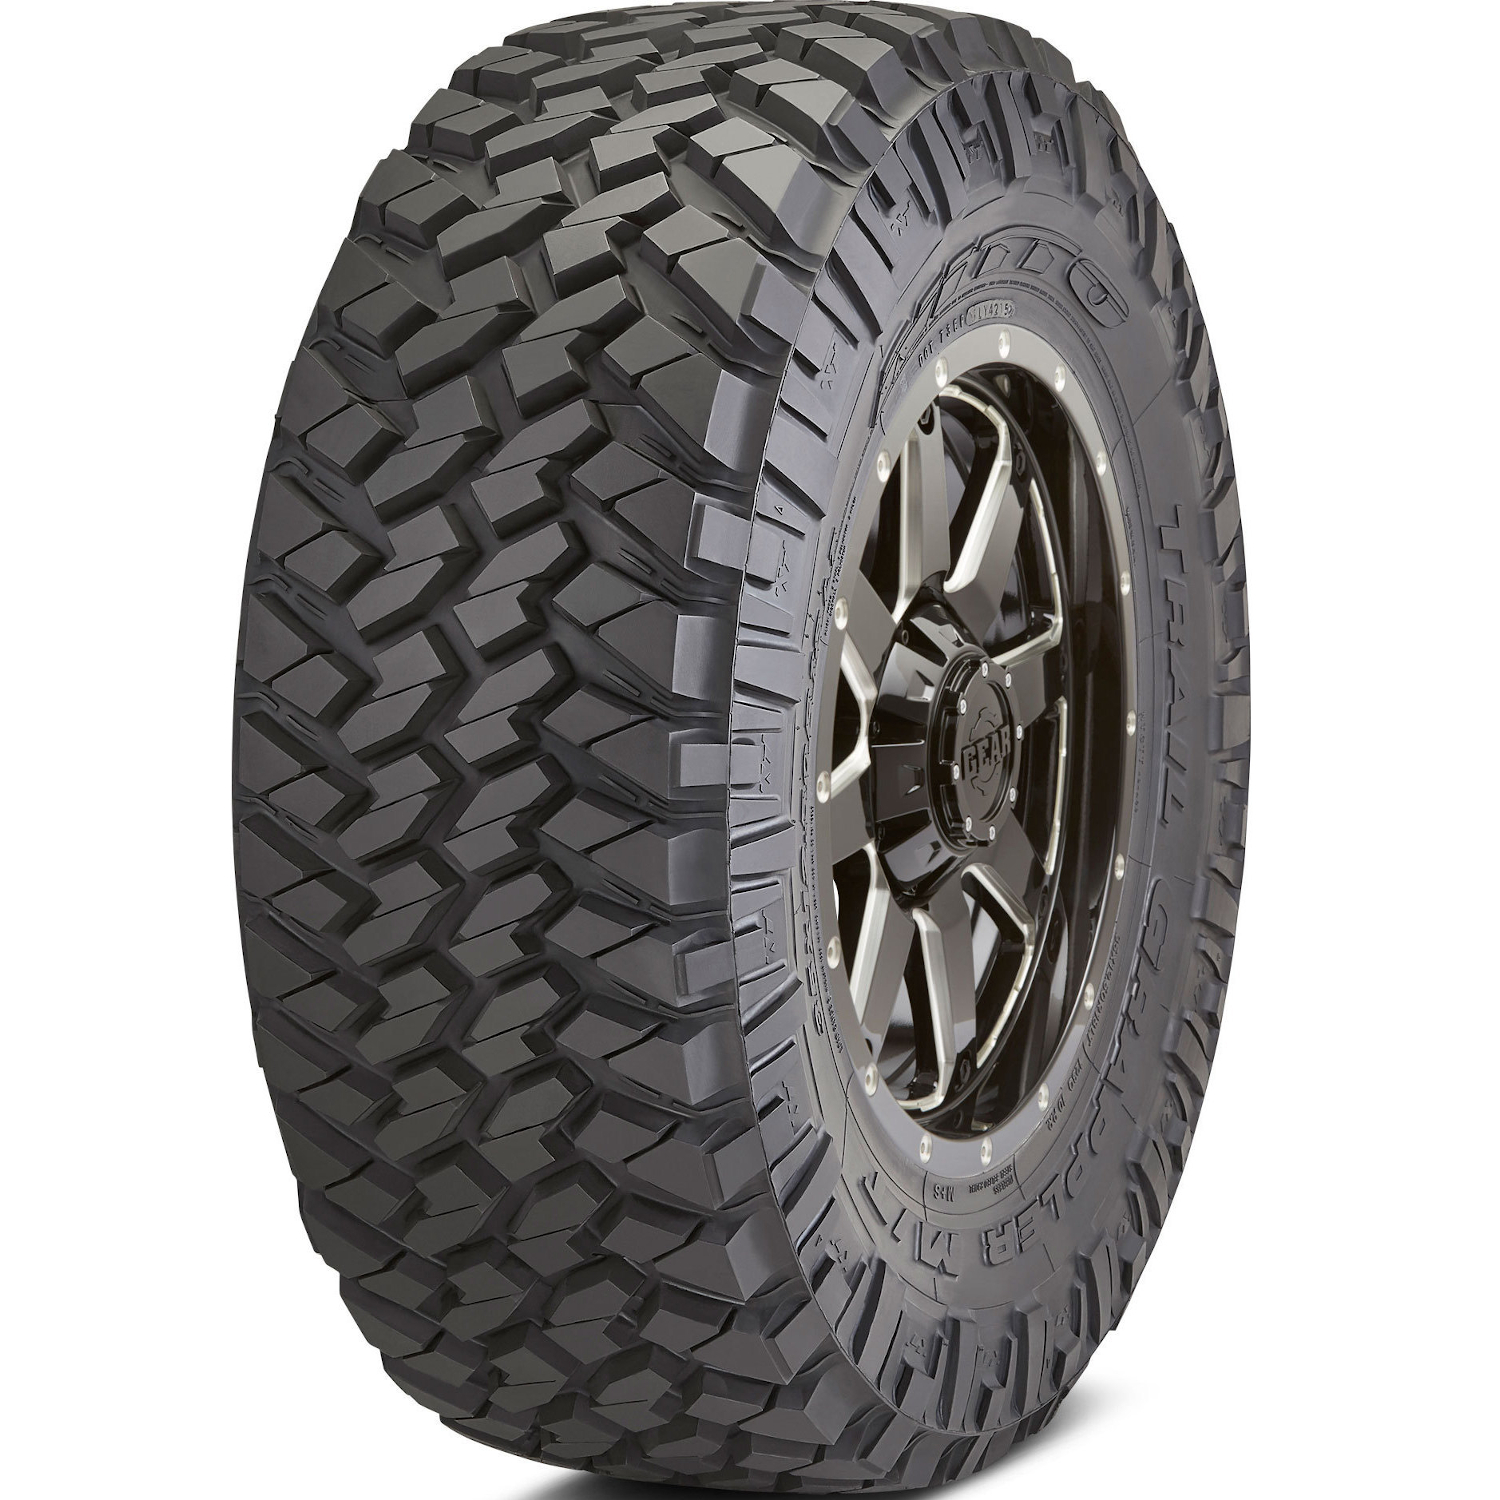 Nitto Trail Grappler 37x12.50R20LT